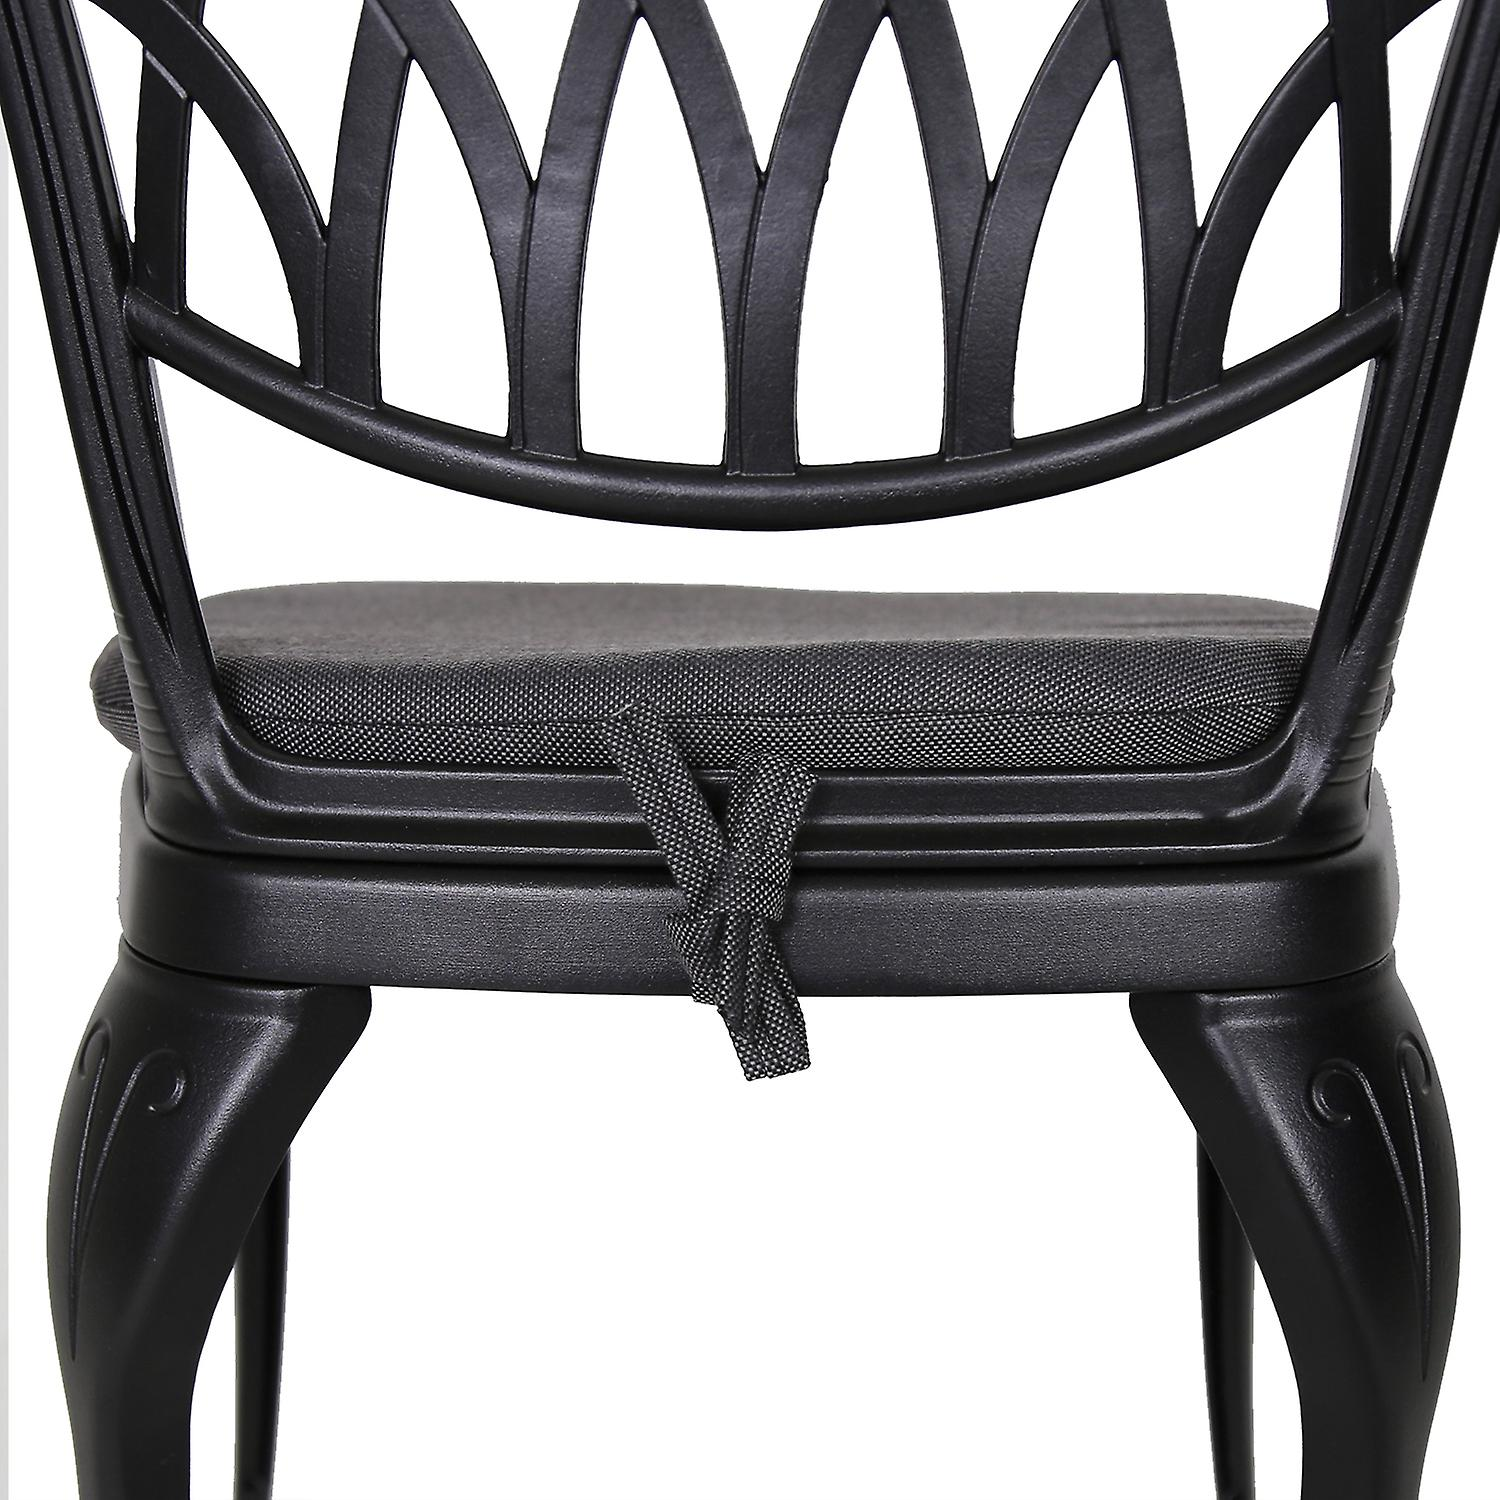 Charles Bentley Cast Aluminium Bistro Round Table And 2 Chairs Set Black Outdoor Table with Dark Grey Cushions